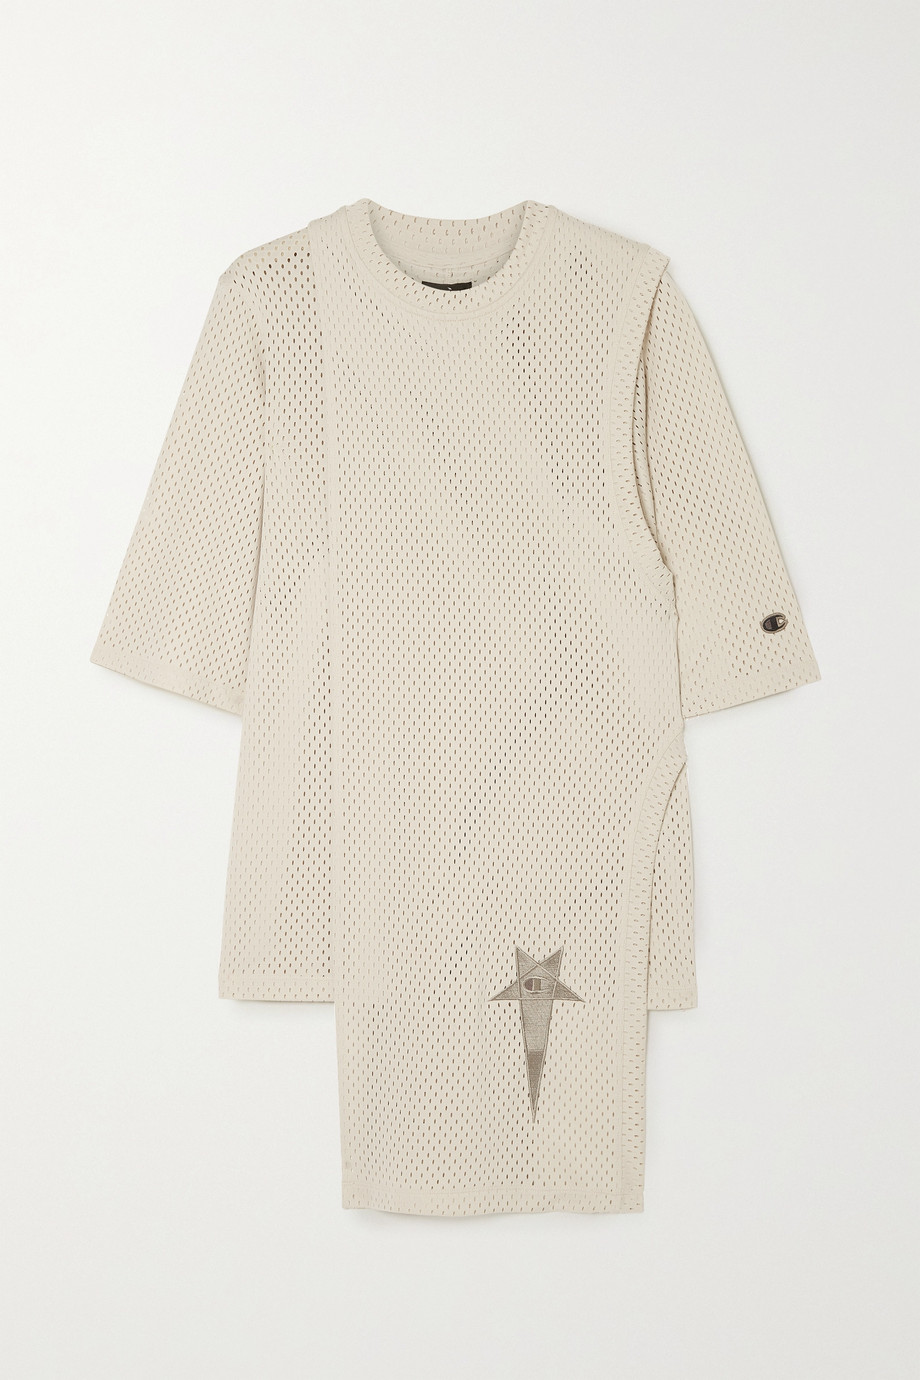 Rick Owens + Champion Toga layered embroidered mesh T-shirt